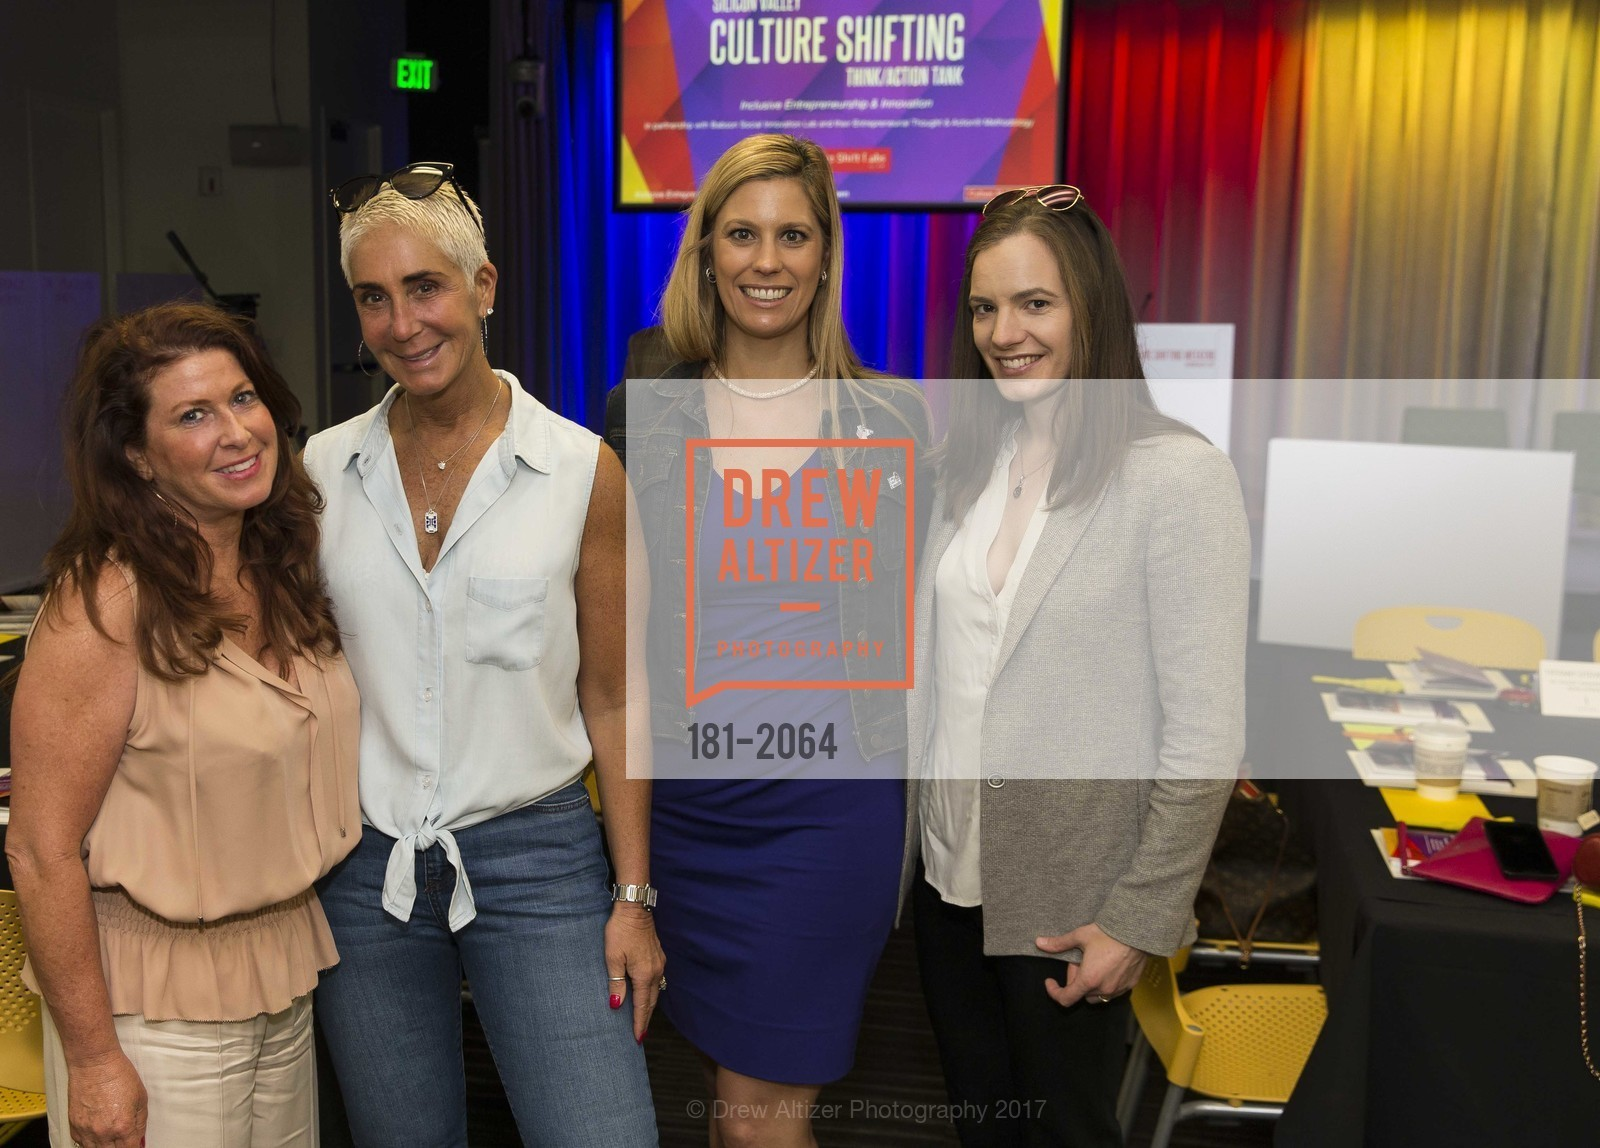 Andrea Hoffman, Robyn Streisand, Johnna Marcus, Arlene Nelson, 3rd Annual Culture Shifting Weekend-Olympic Tech Talk, Mountain View, April 22nd, 2017